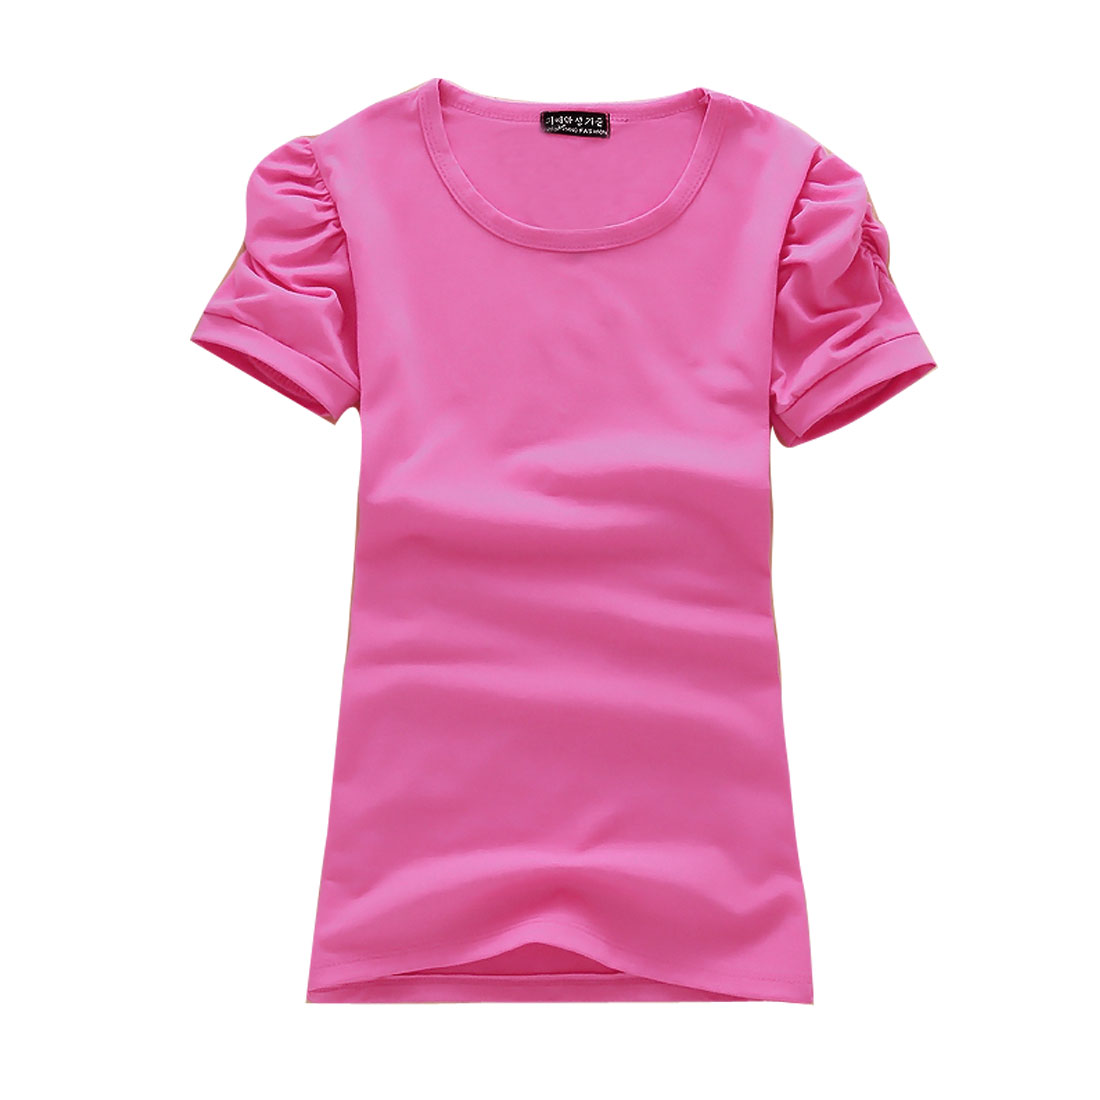 Women Leisure Korea Style Short Pleated Puff Sleeves T-Shirt Fuchsia XS